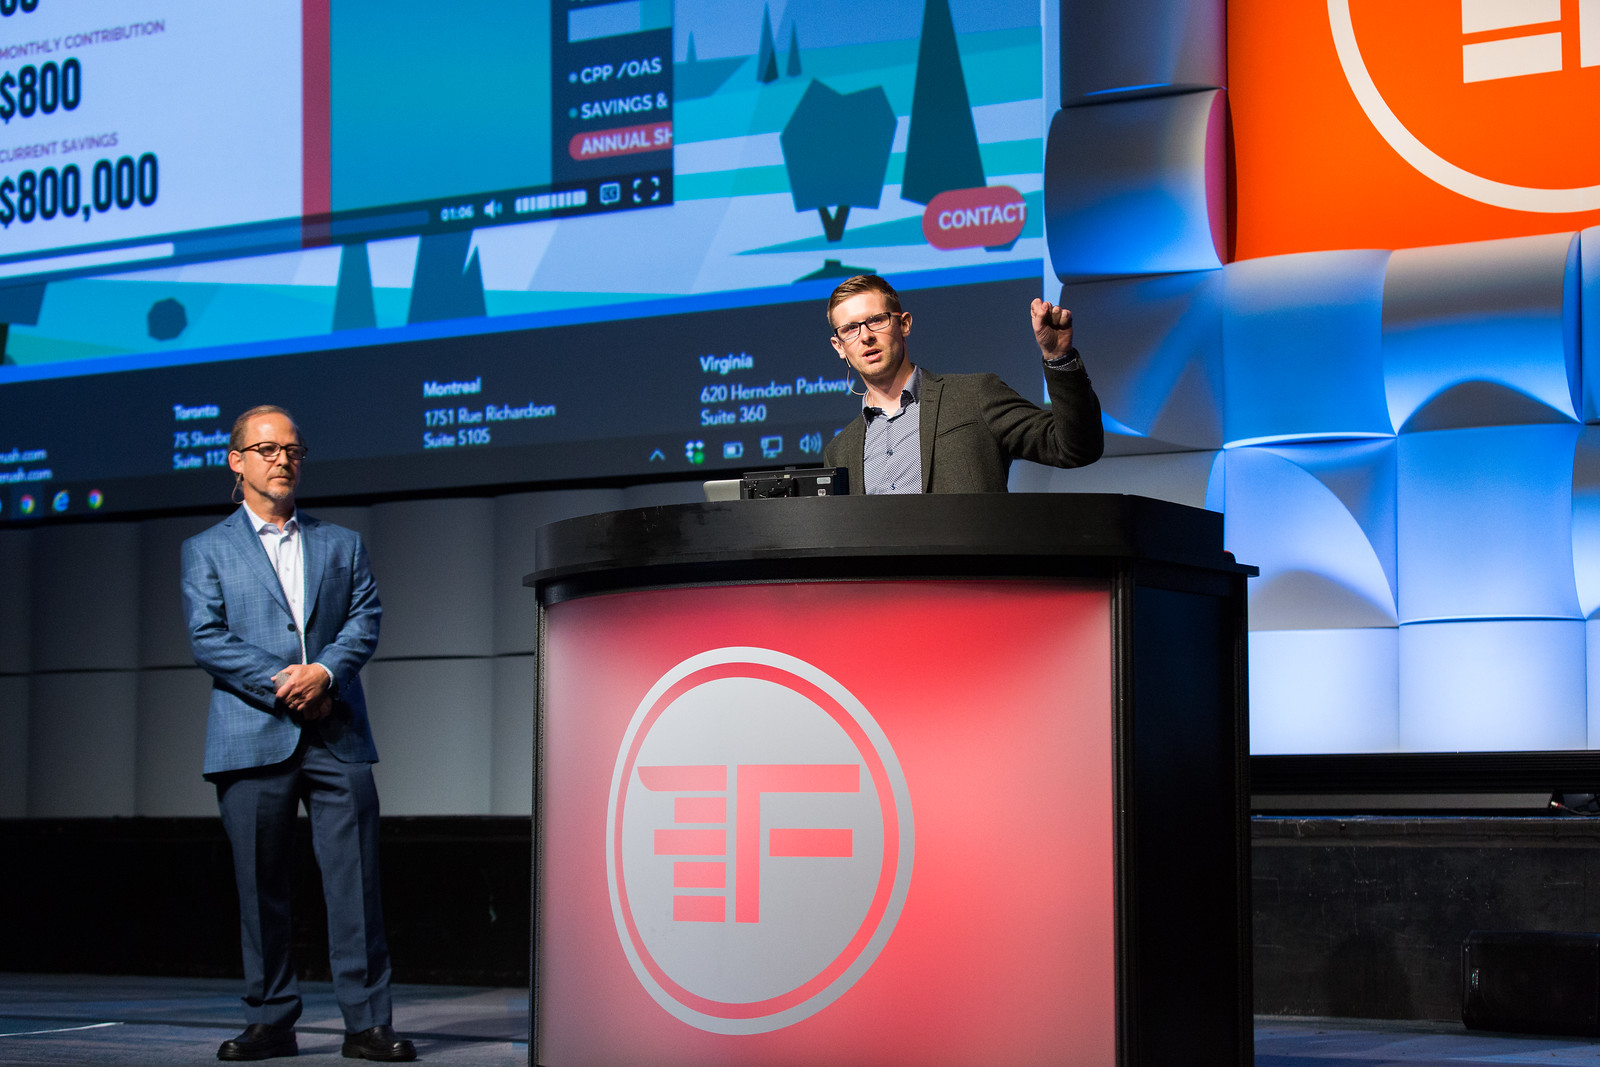 BLUERUSH present AI enabled virtual assistant at Finovate 2017.